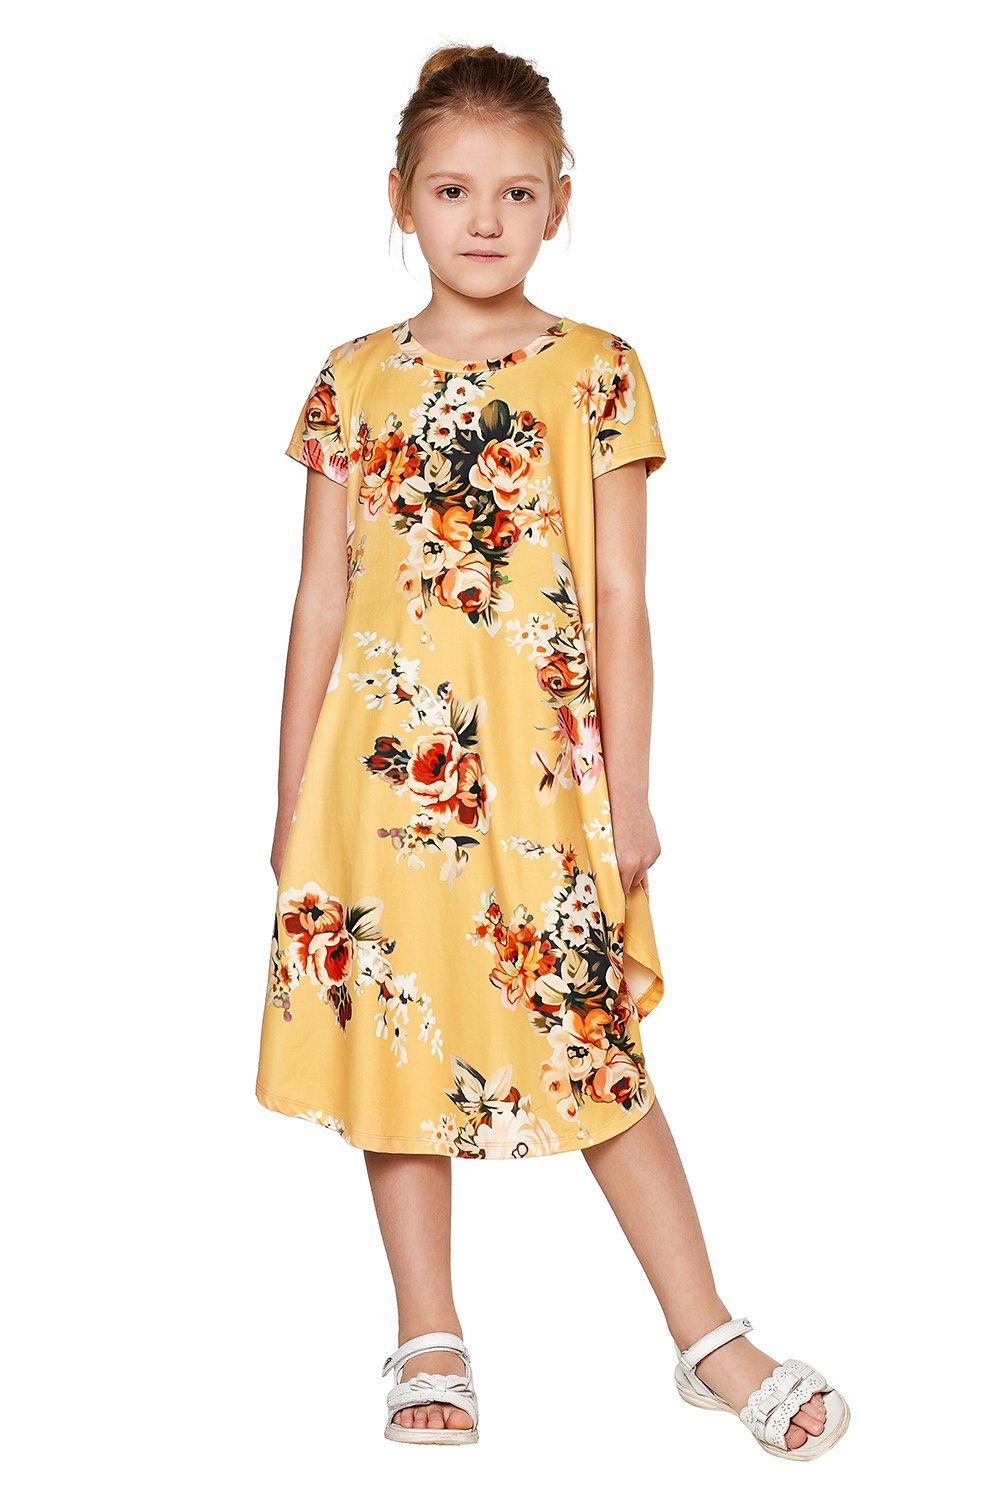 Yellow Short Sleeve Floral Print Toddler Dress-Baby&Kids, Kids Dresses-Azura Exchange